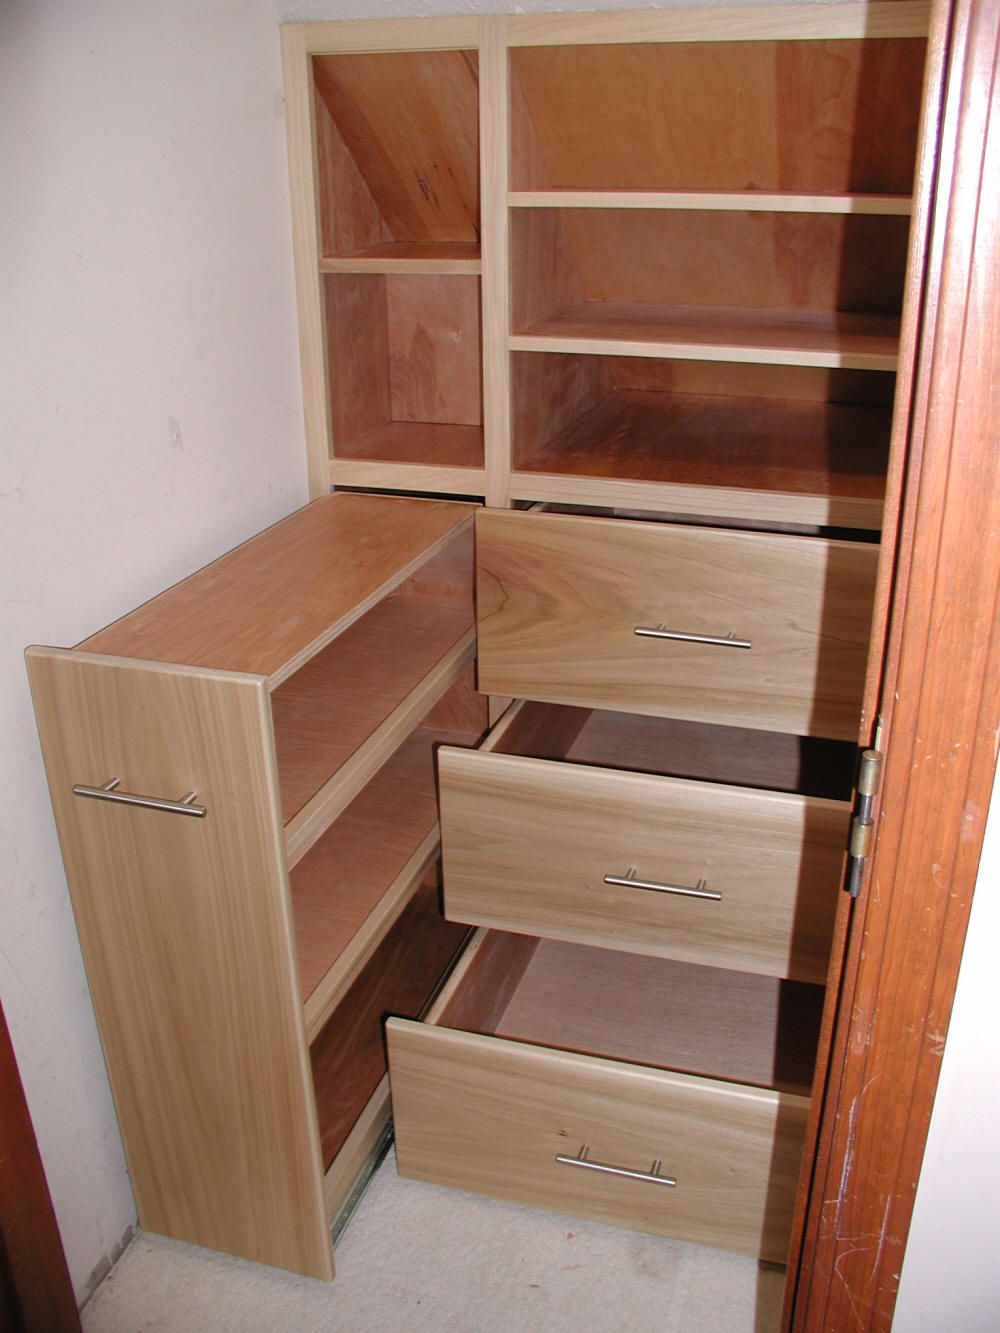 Stairwell Storage under stairs storage ideas for basement stairs, just might have to